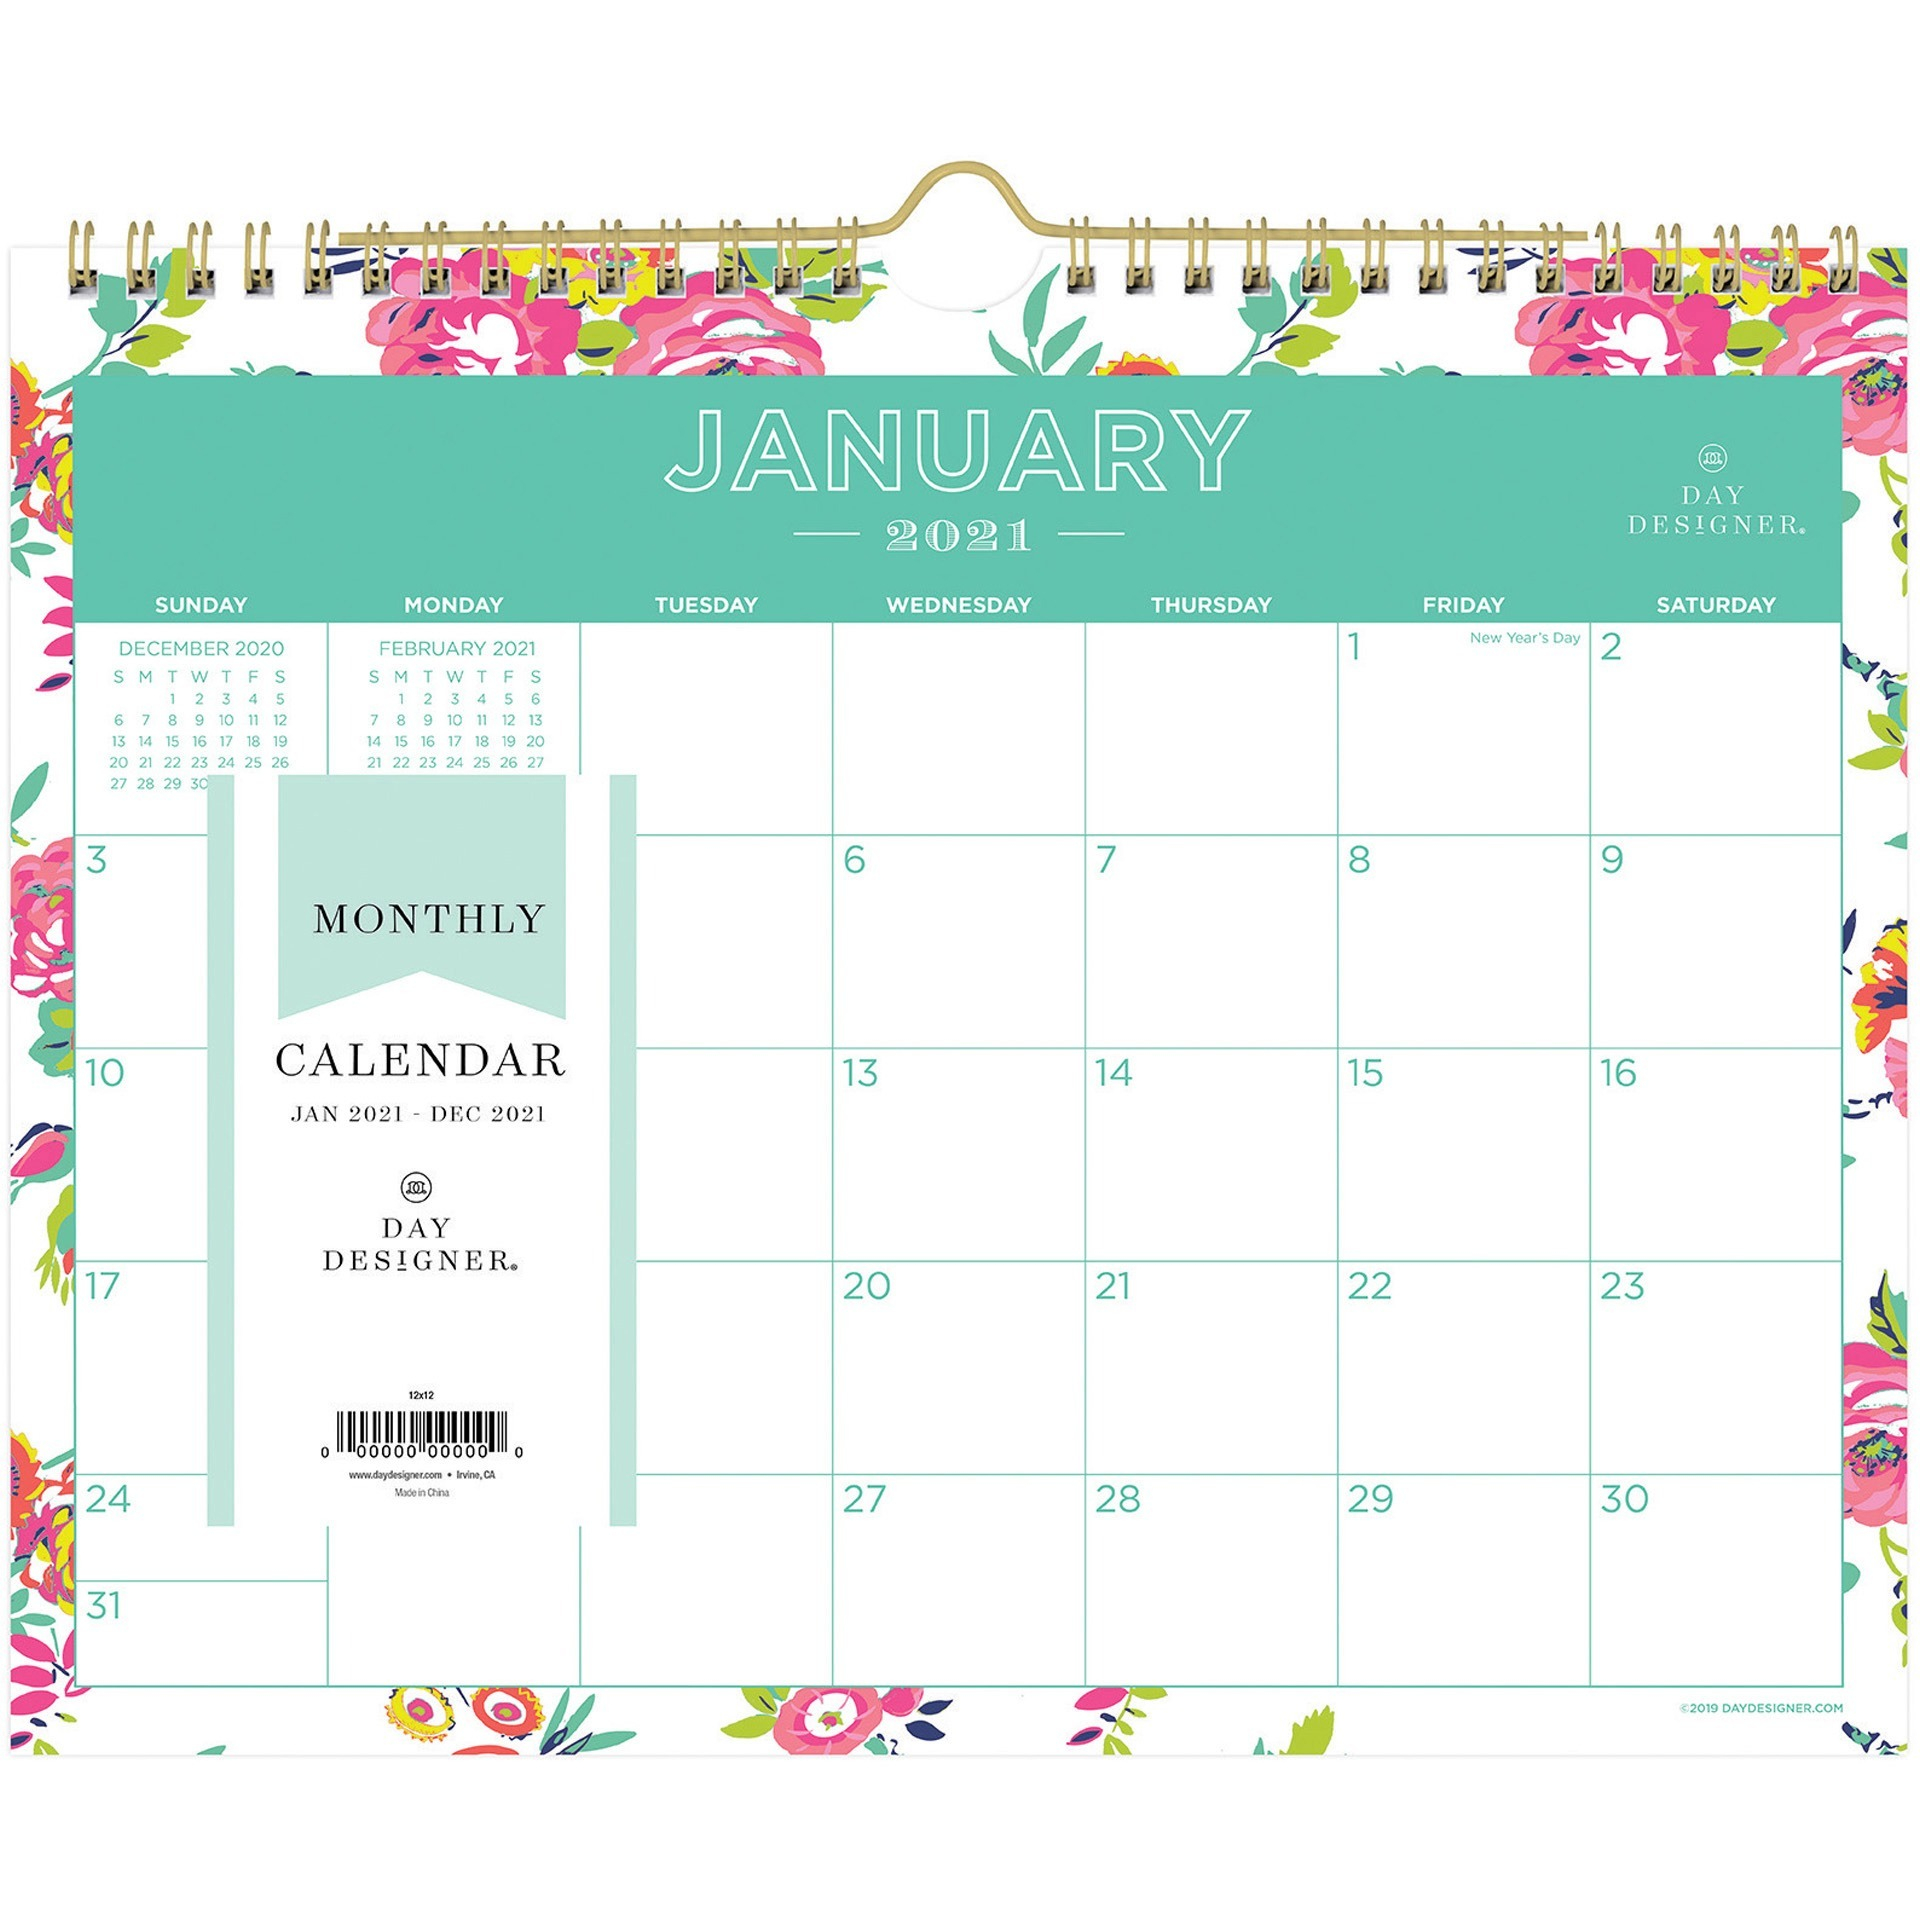 Blue Sky Day Designer White Floral Wall Calendar Julian Dates Monthly 1 Year January 2021 till December 2021 8 34 x 11 Sheet Size Twin BLS x